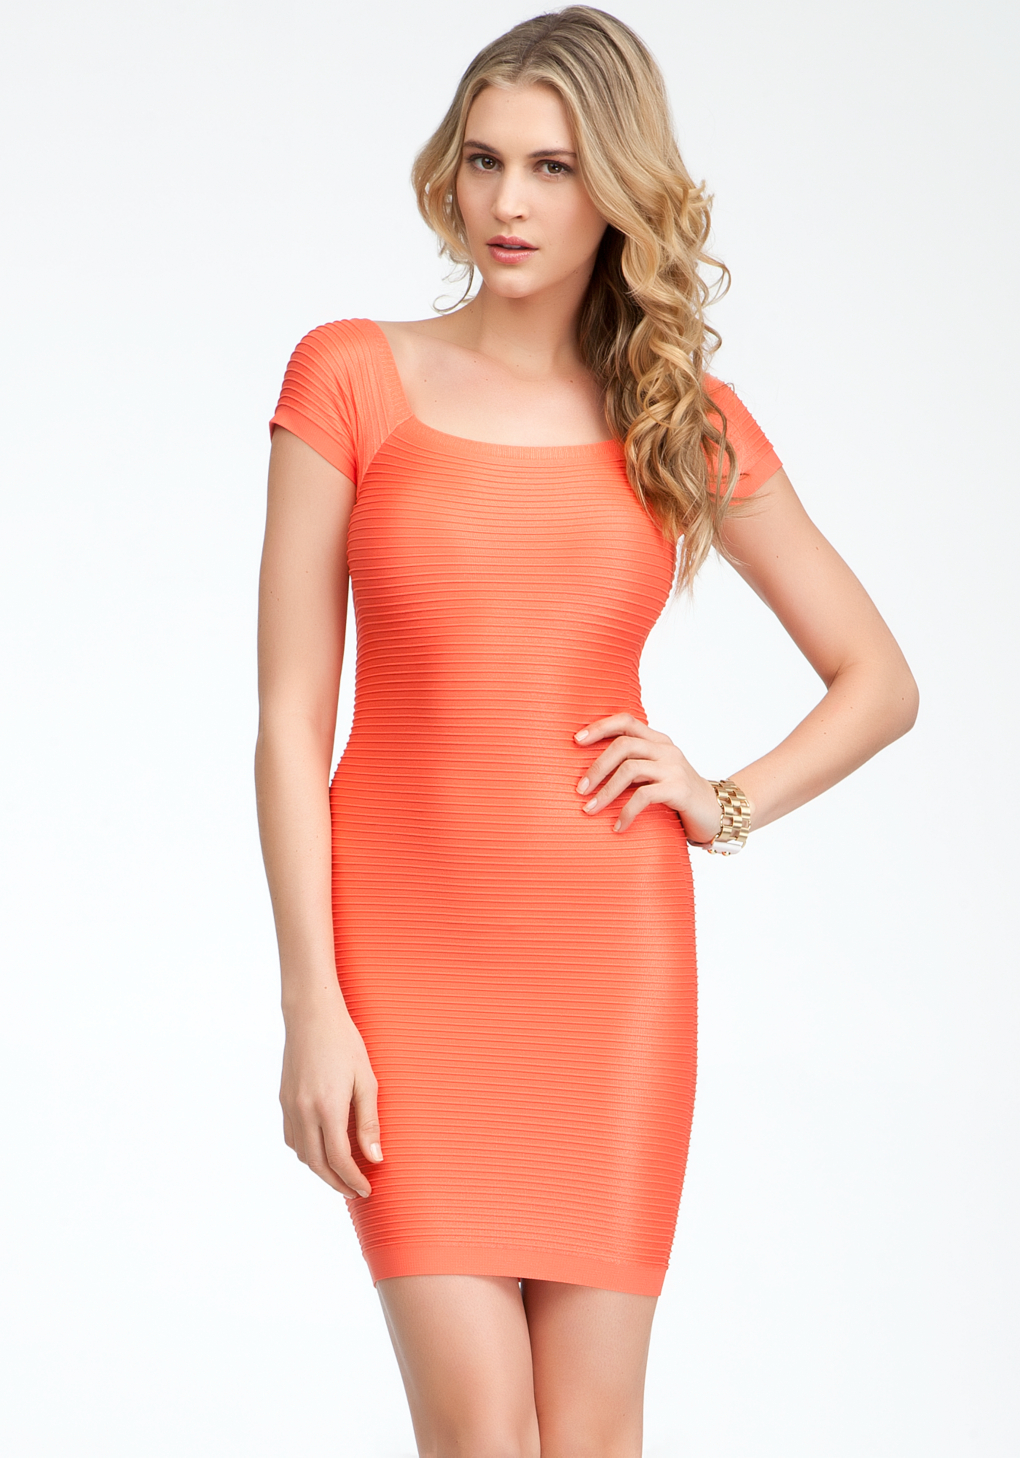 Bebe at up to 90% off retail! thredUP has a huge selection of like-new Bebe women's clothing. Find Bebe tops, dresses, and skirts at thredUP. Find Bebe tops, dresses, and skirts at thredUP. Share on Facebook Tweet Pin it.